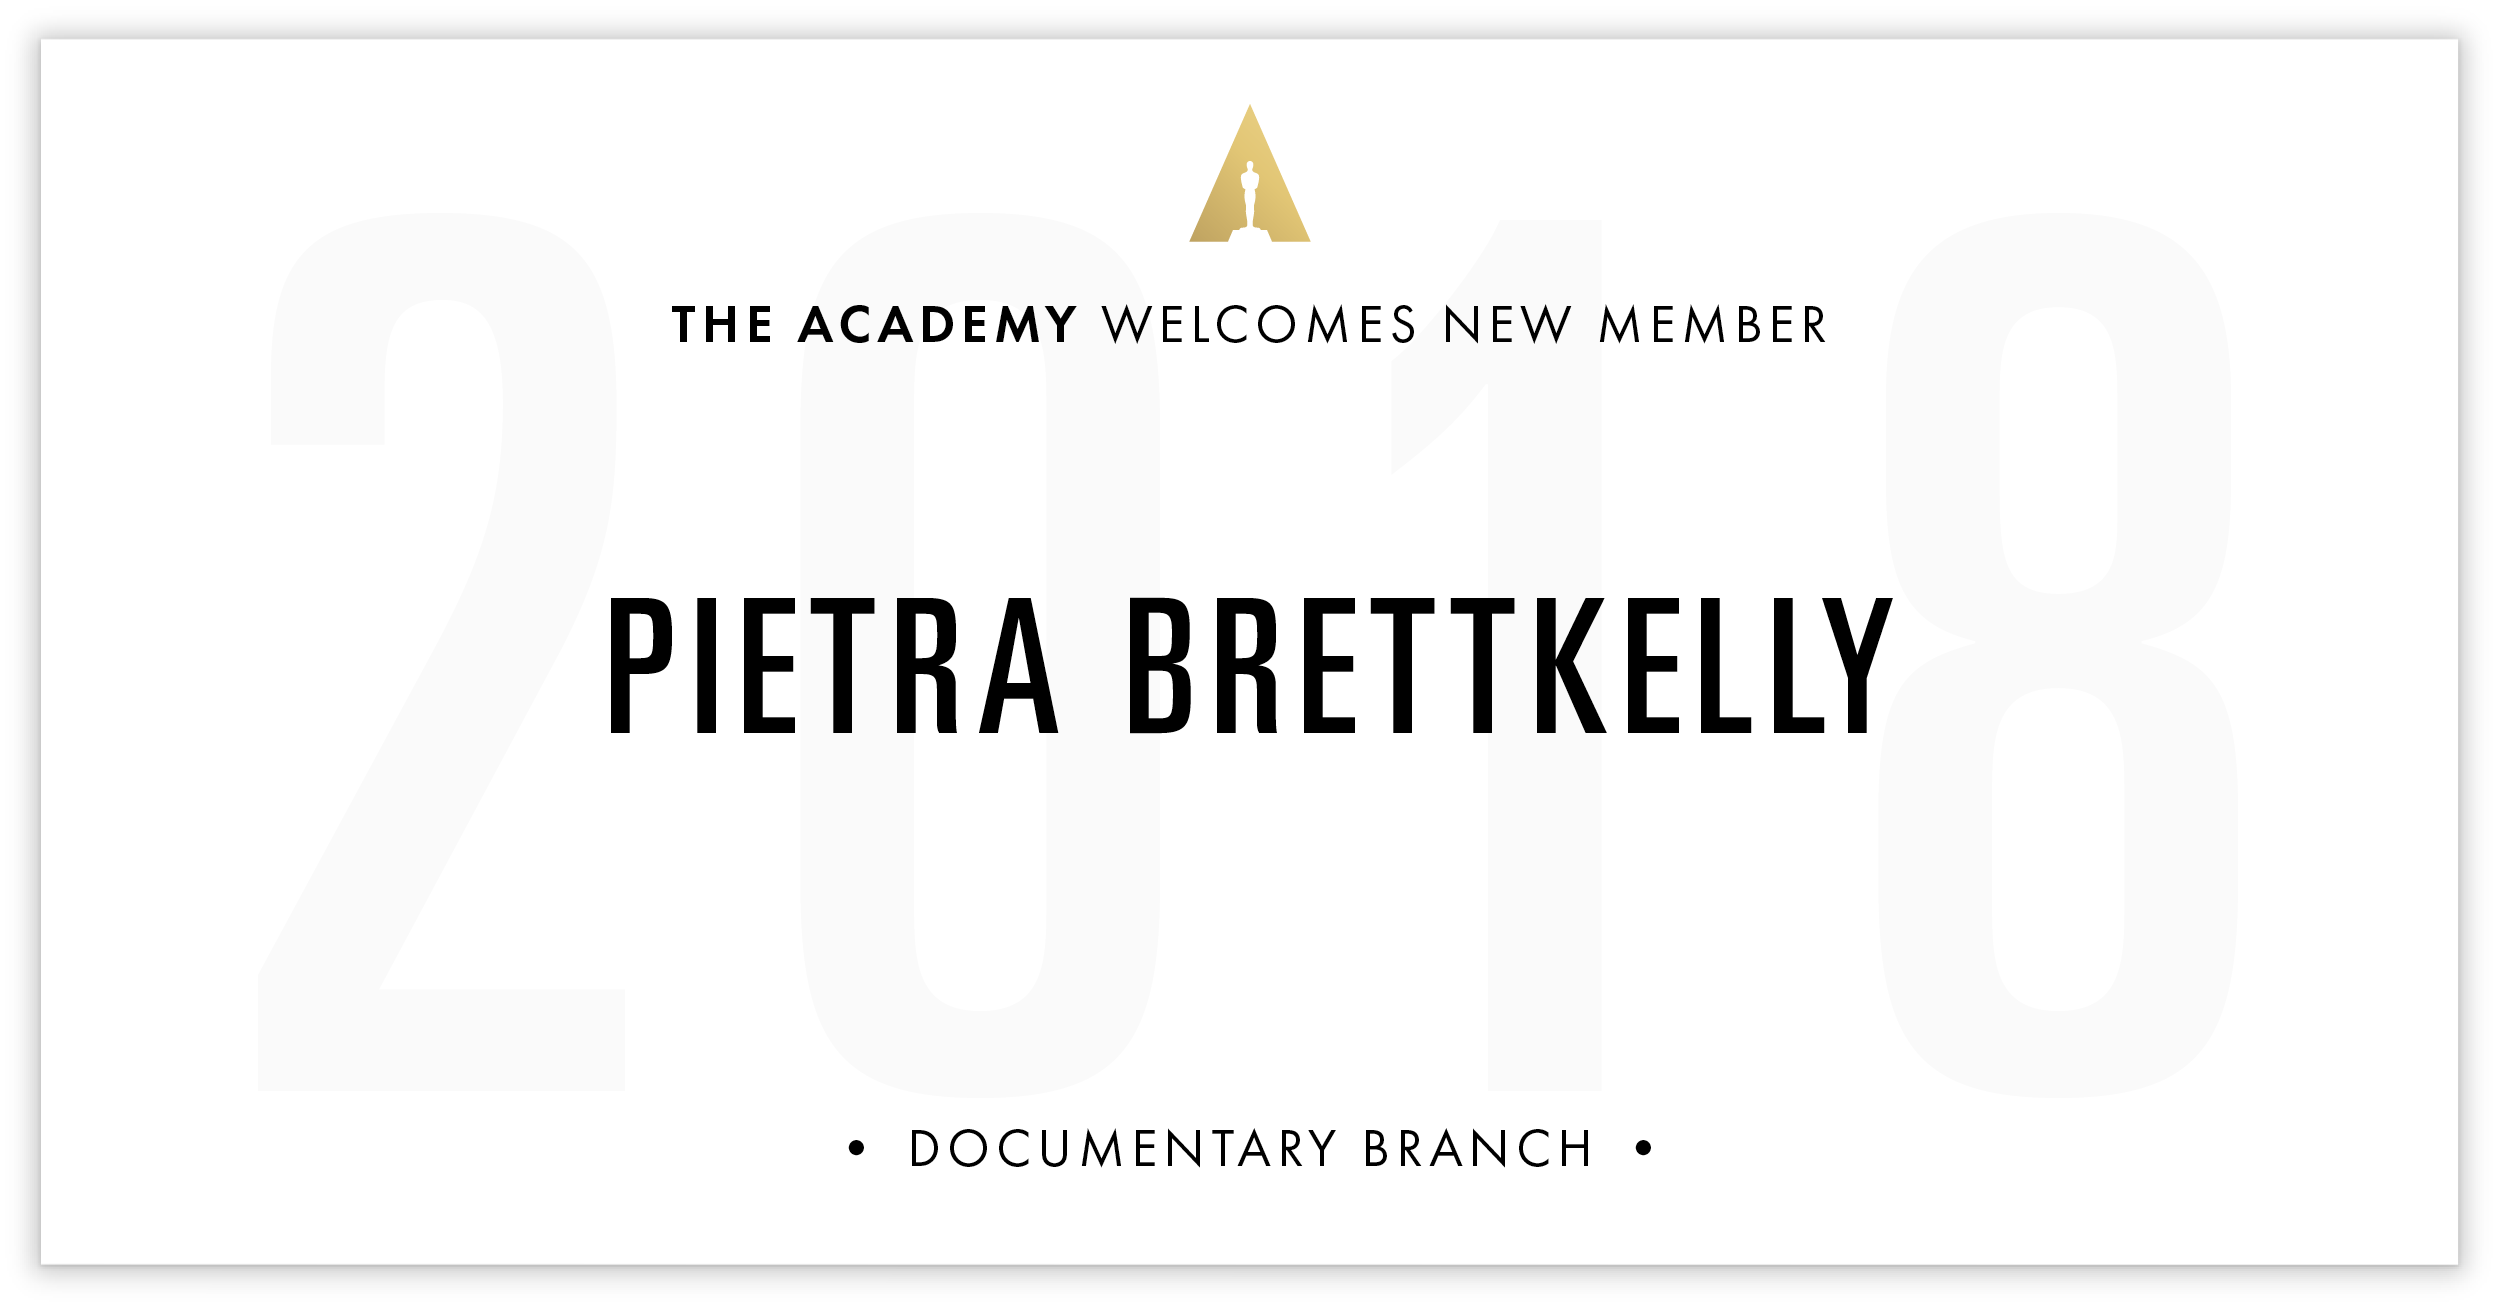 Pietra Brettkelly is invited!